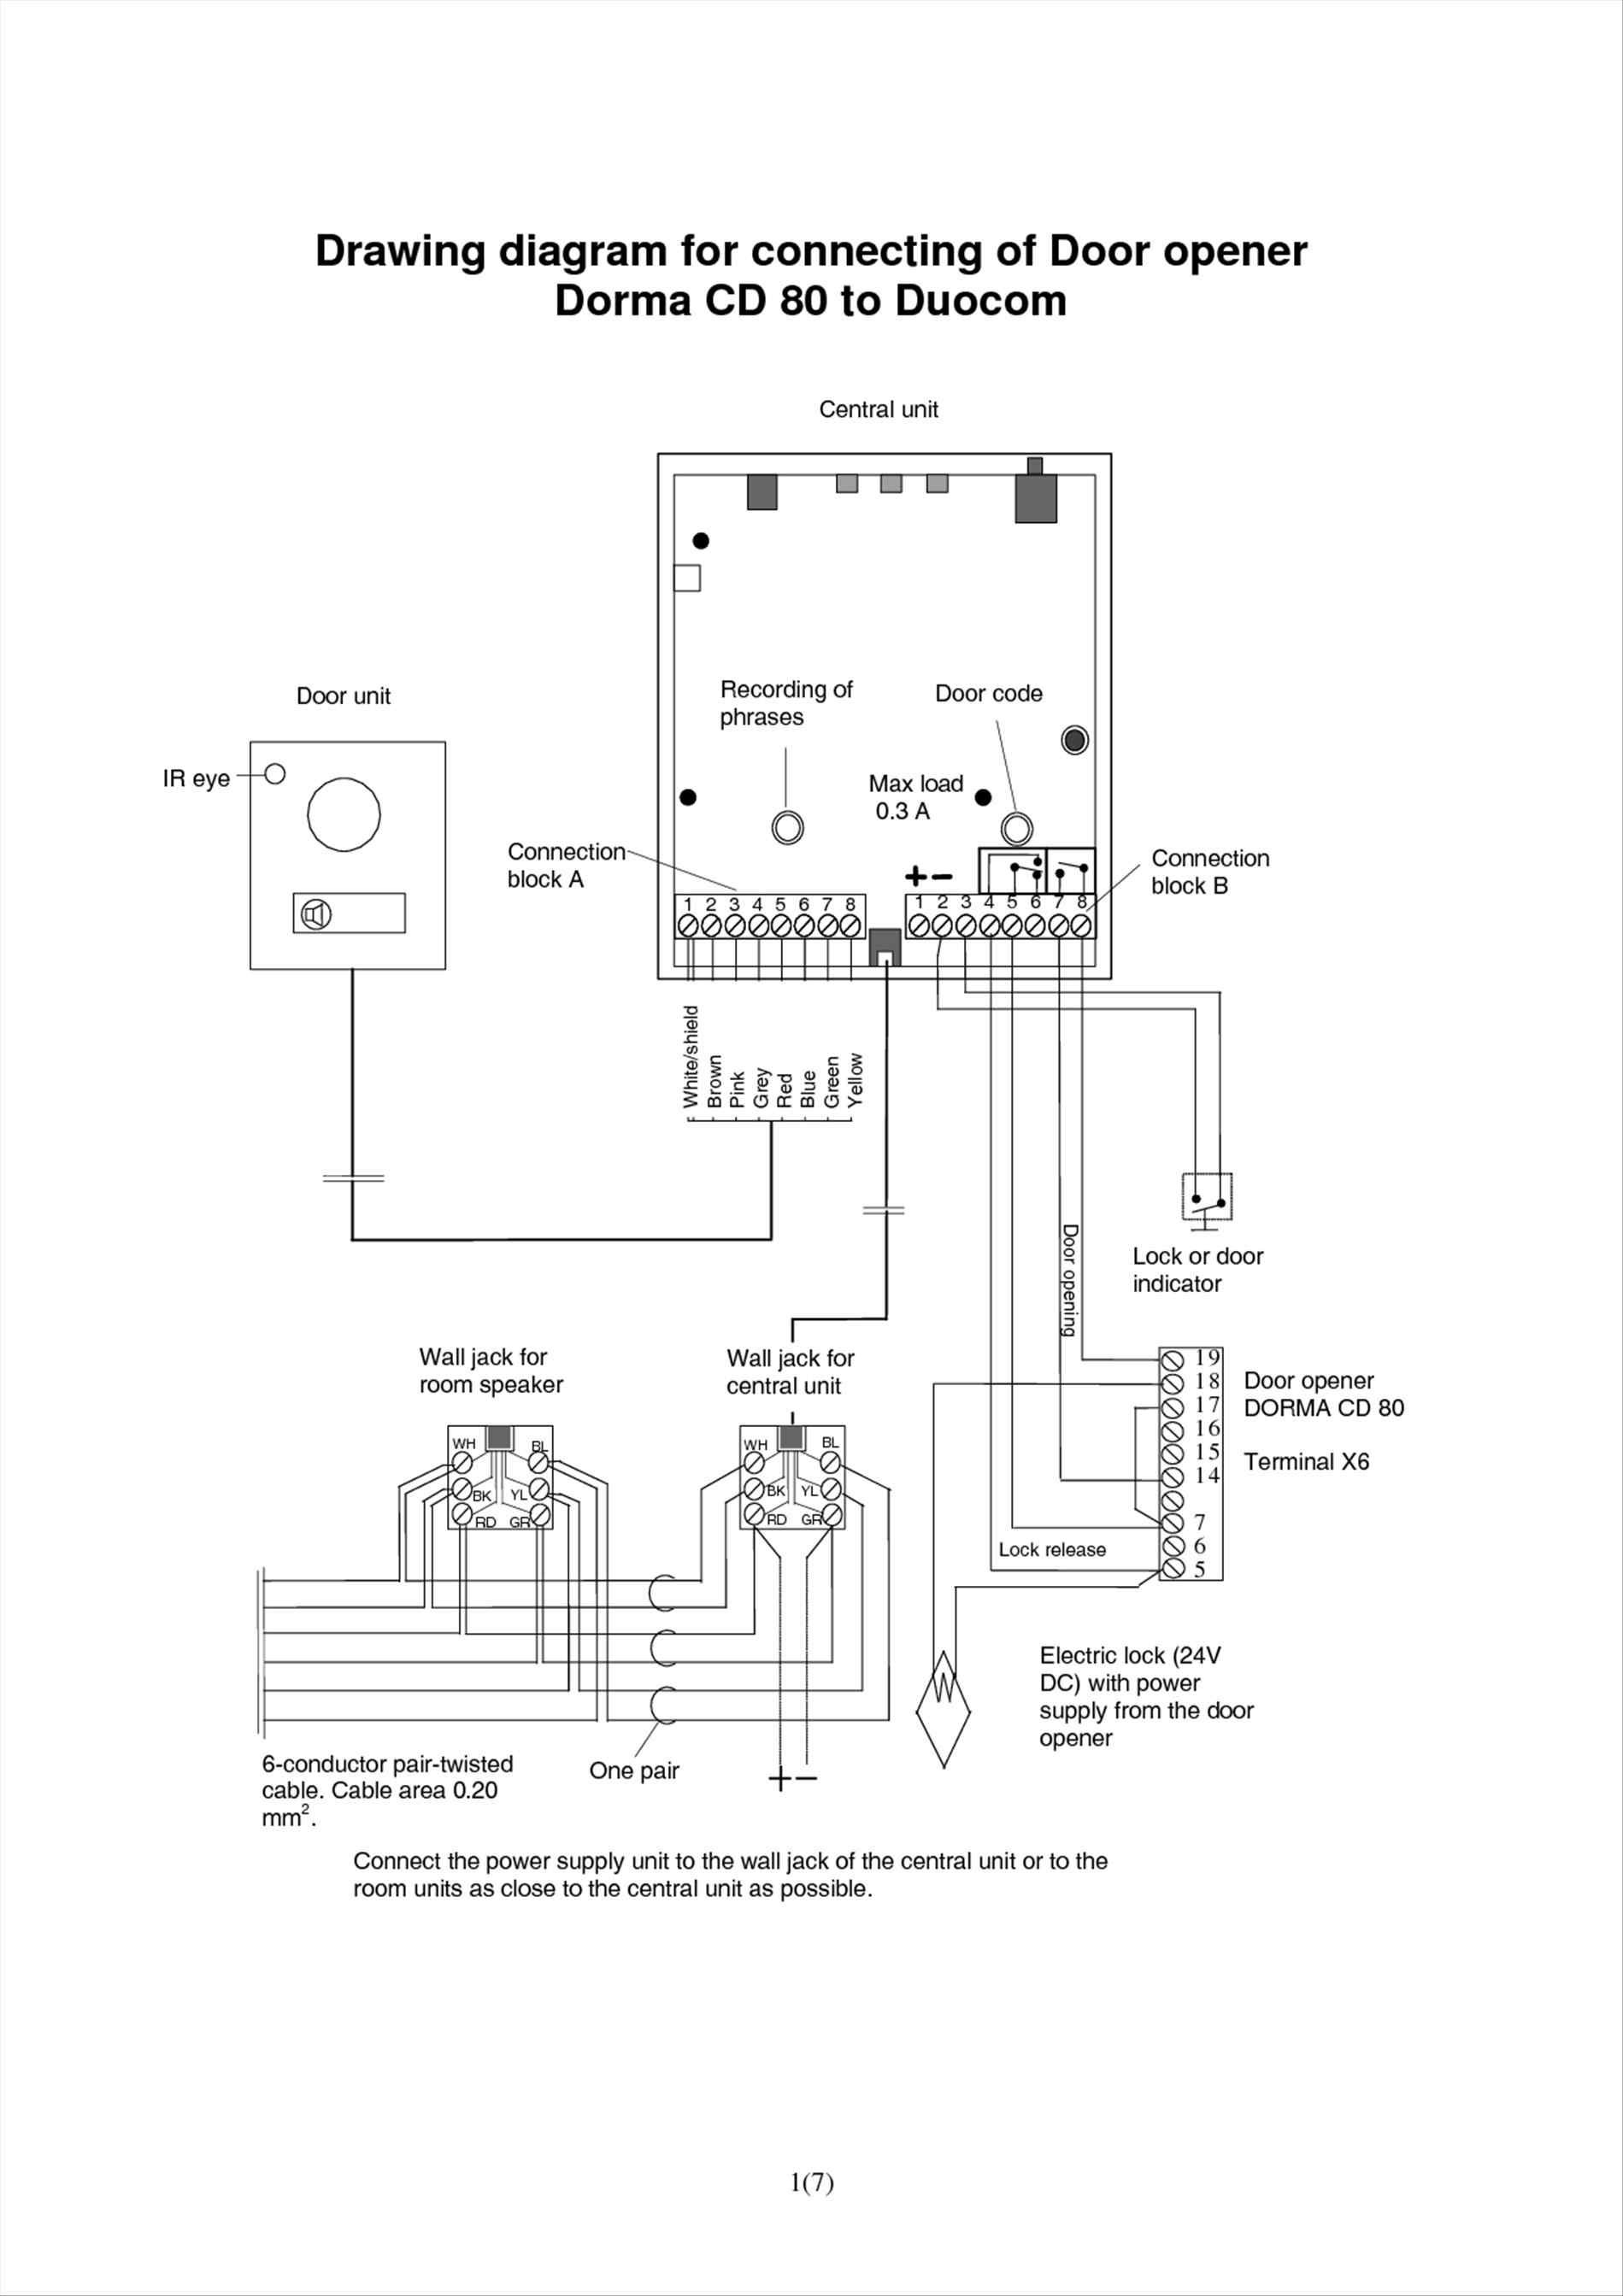 pilz pnoz x7 wiring diagram Download-Wiring Diagram Roller Shutter Key Switch New Craftsman Garage Door Garage Door Sensor Wiring Diagram 7-b